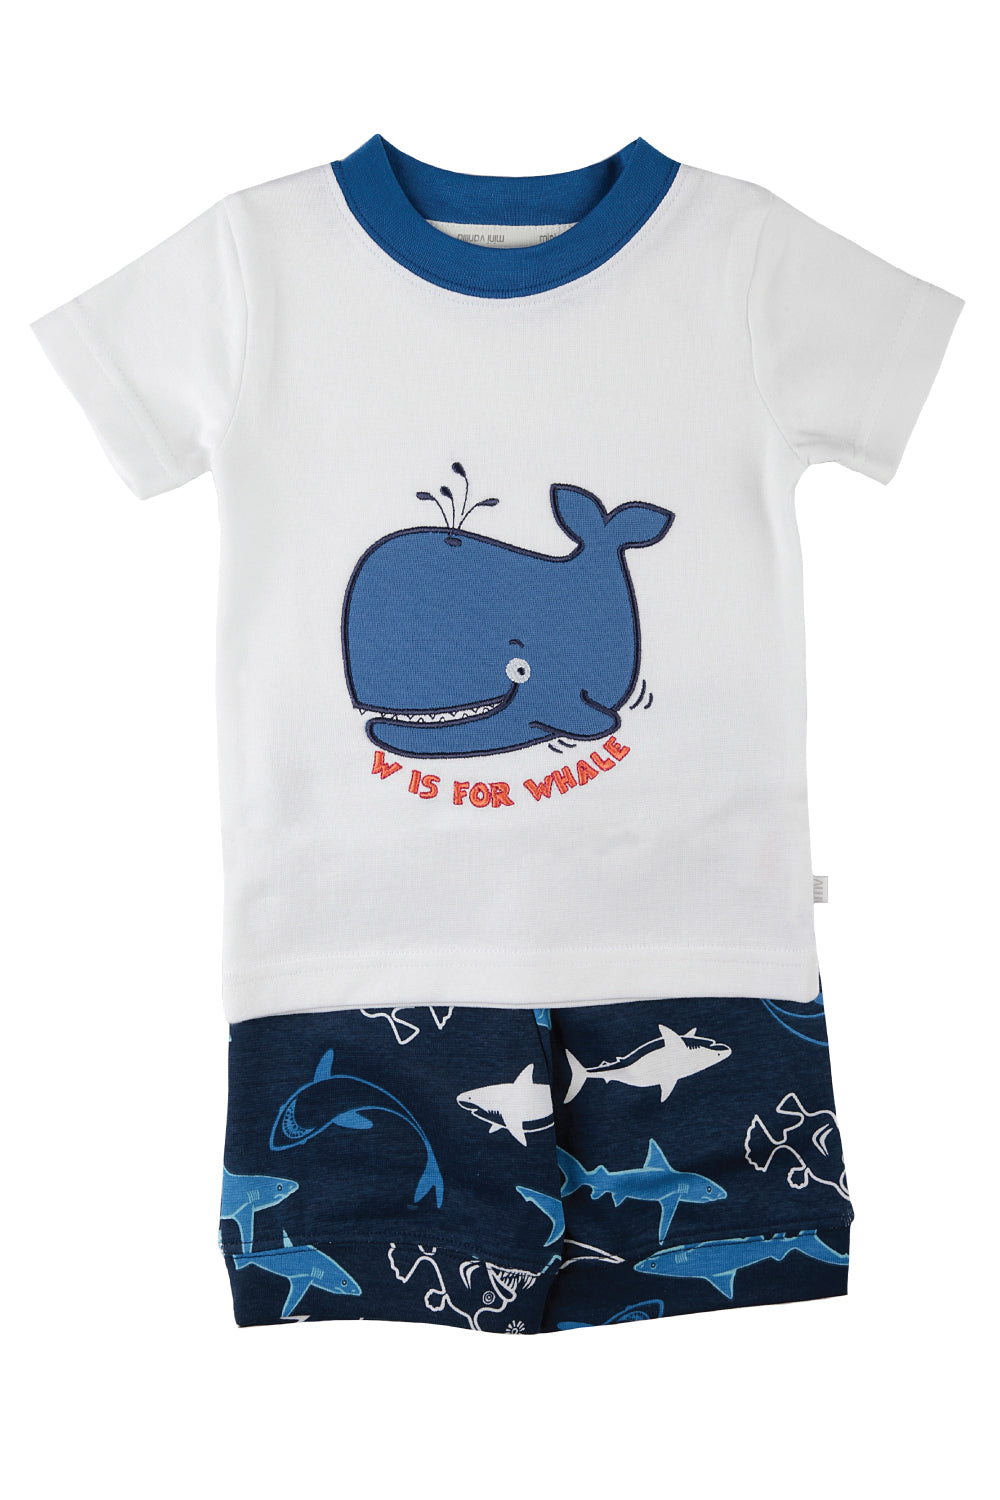 W is for Whale! Boys summer PJs for ages 1-8 years